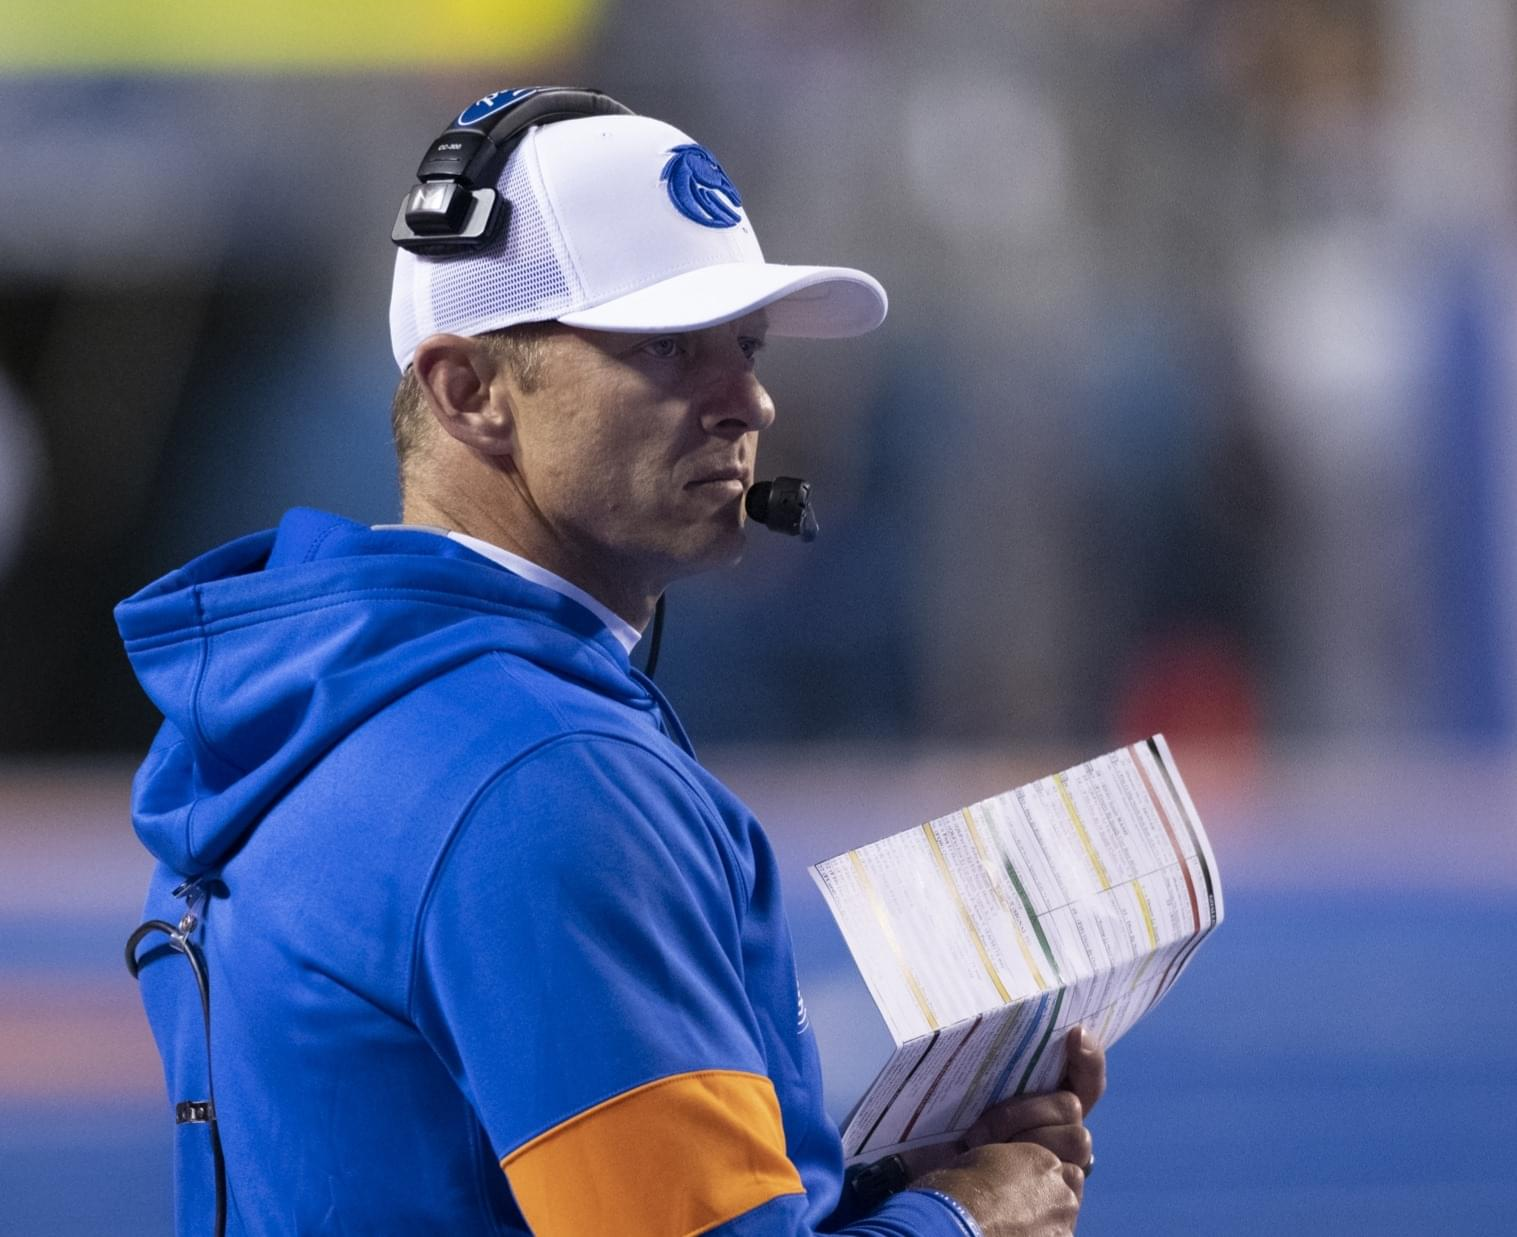 EXCLUSIVE INTERVIEW WITH BOISE STATE FOOTBALL COACH BRYAN HARSIN